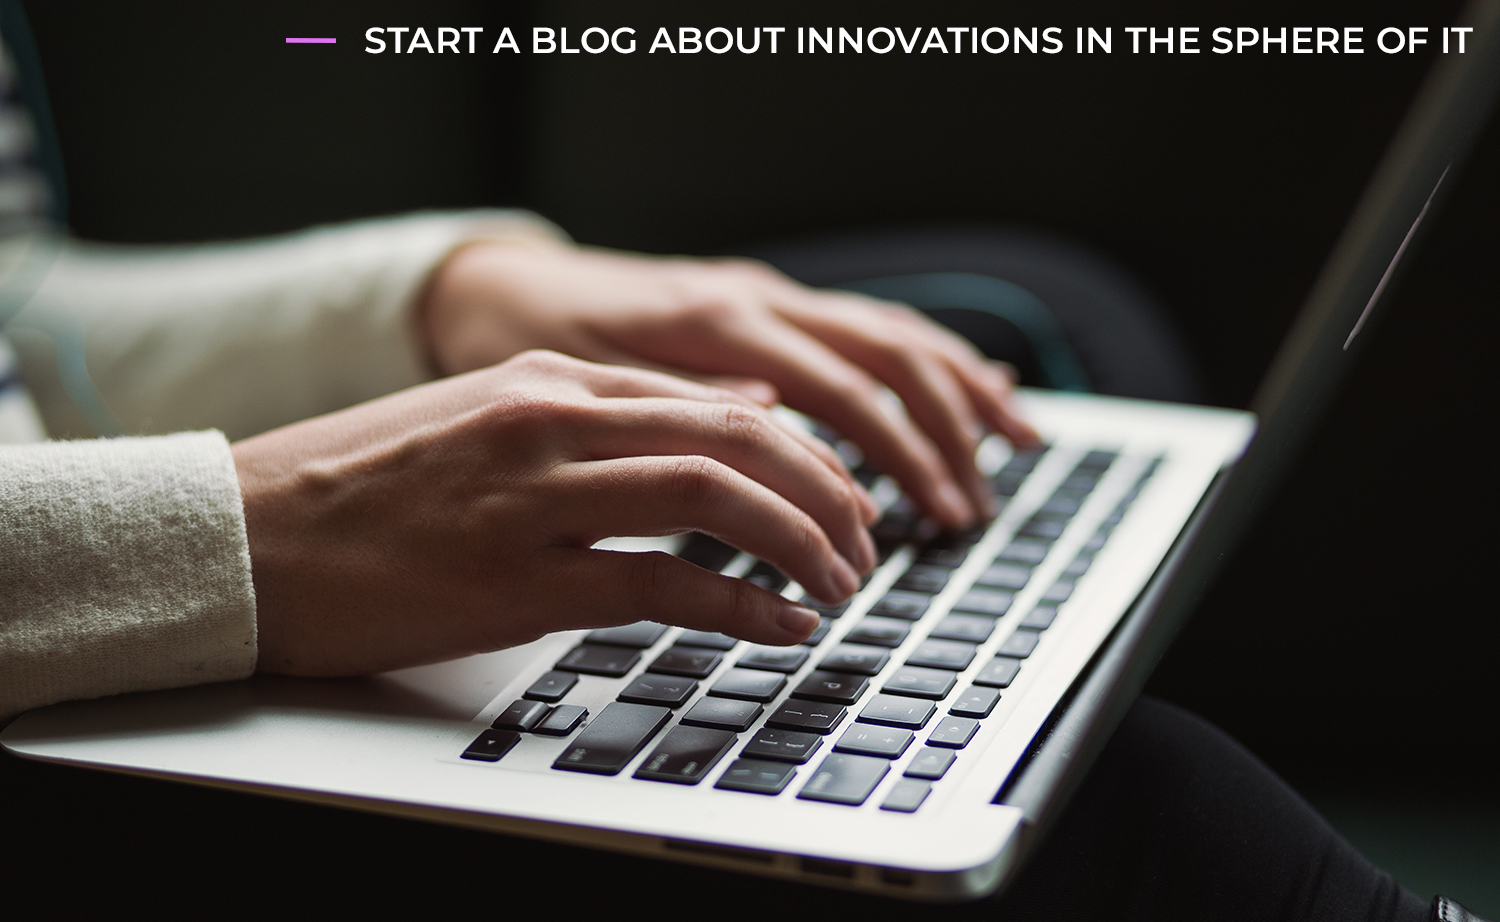 start a blog about innovations in the sphere of it